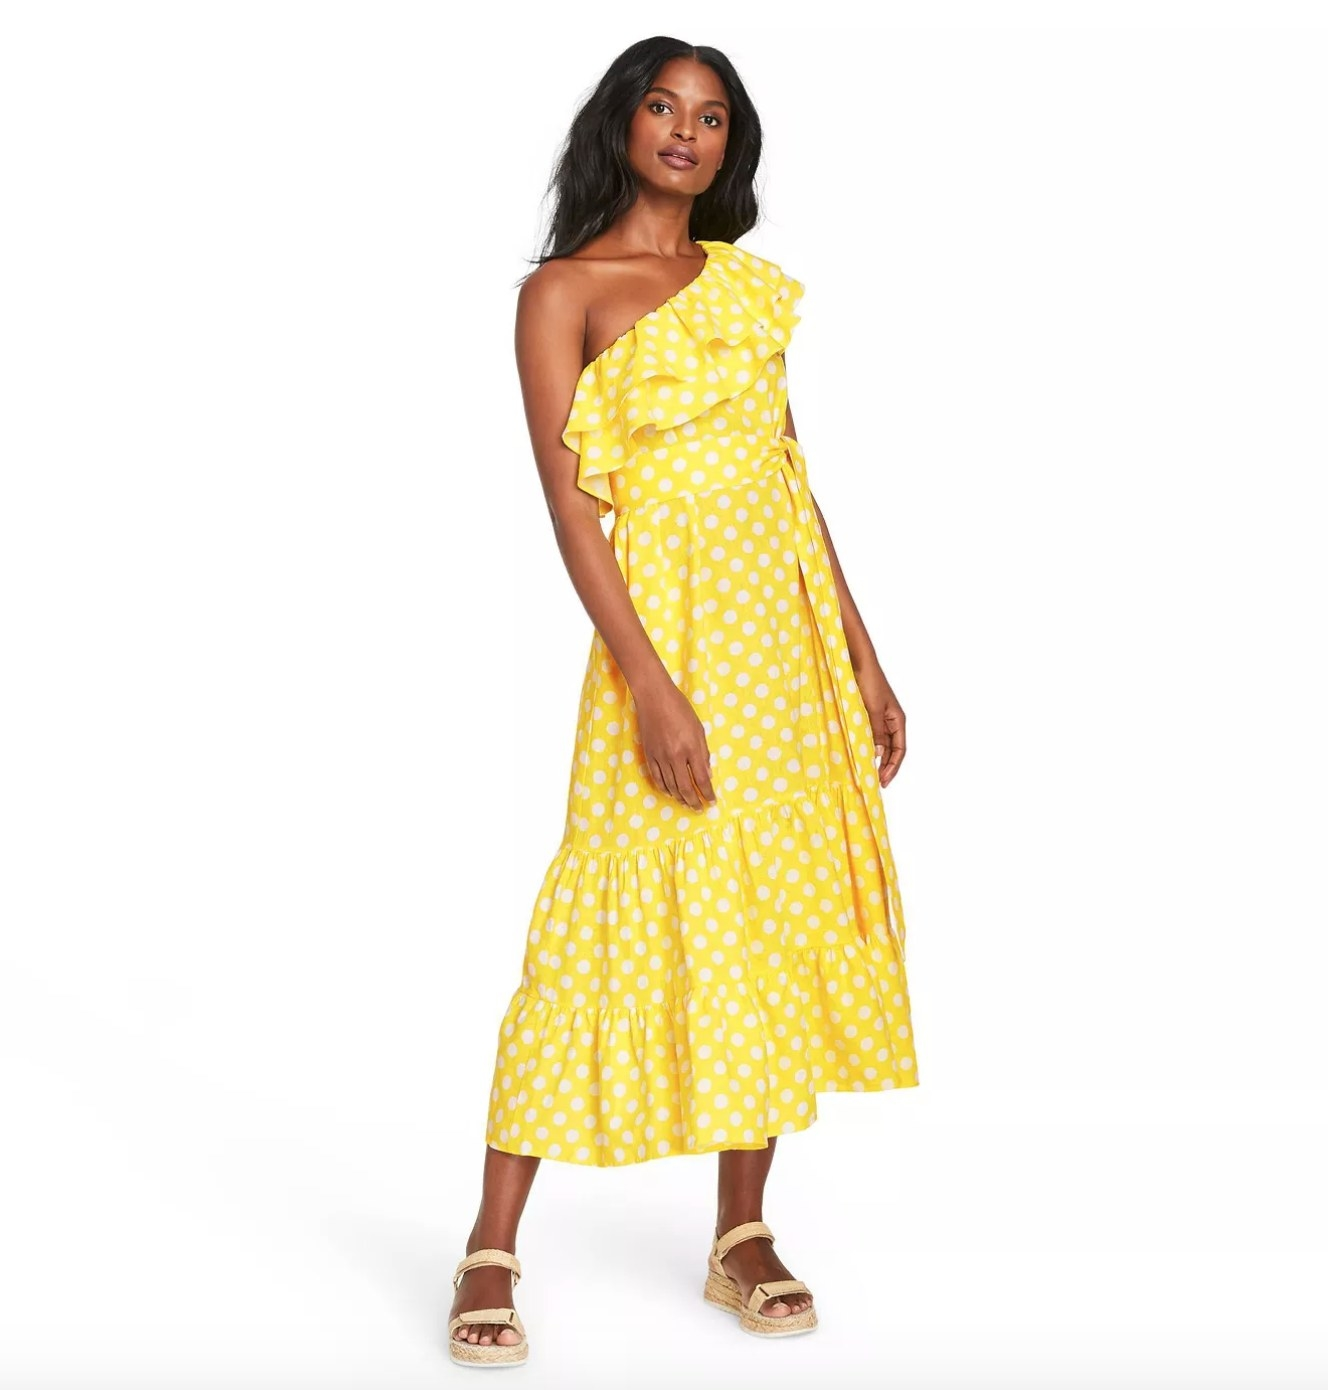 Model wearing the dress in yellow